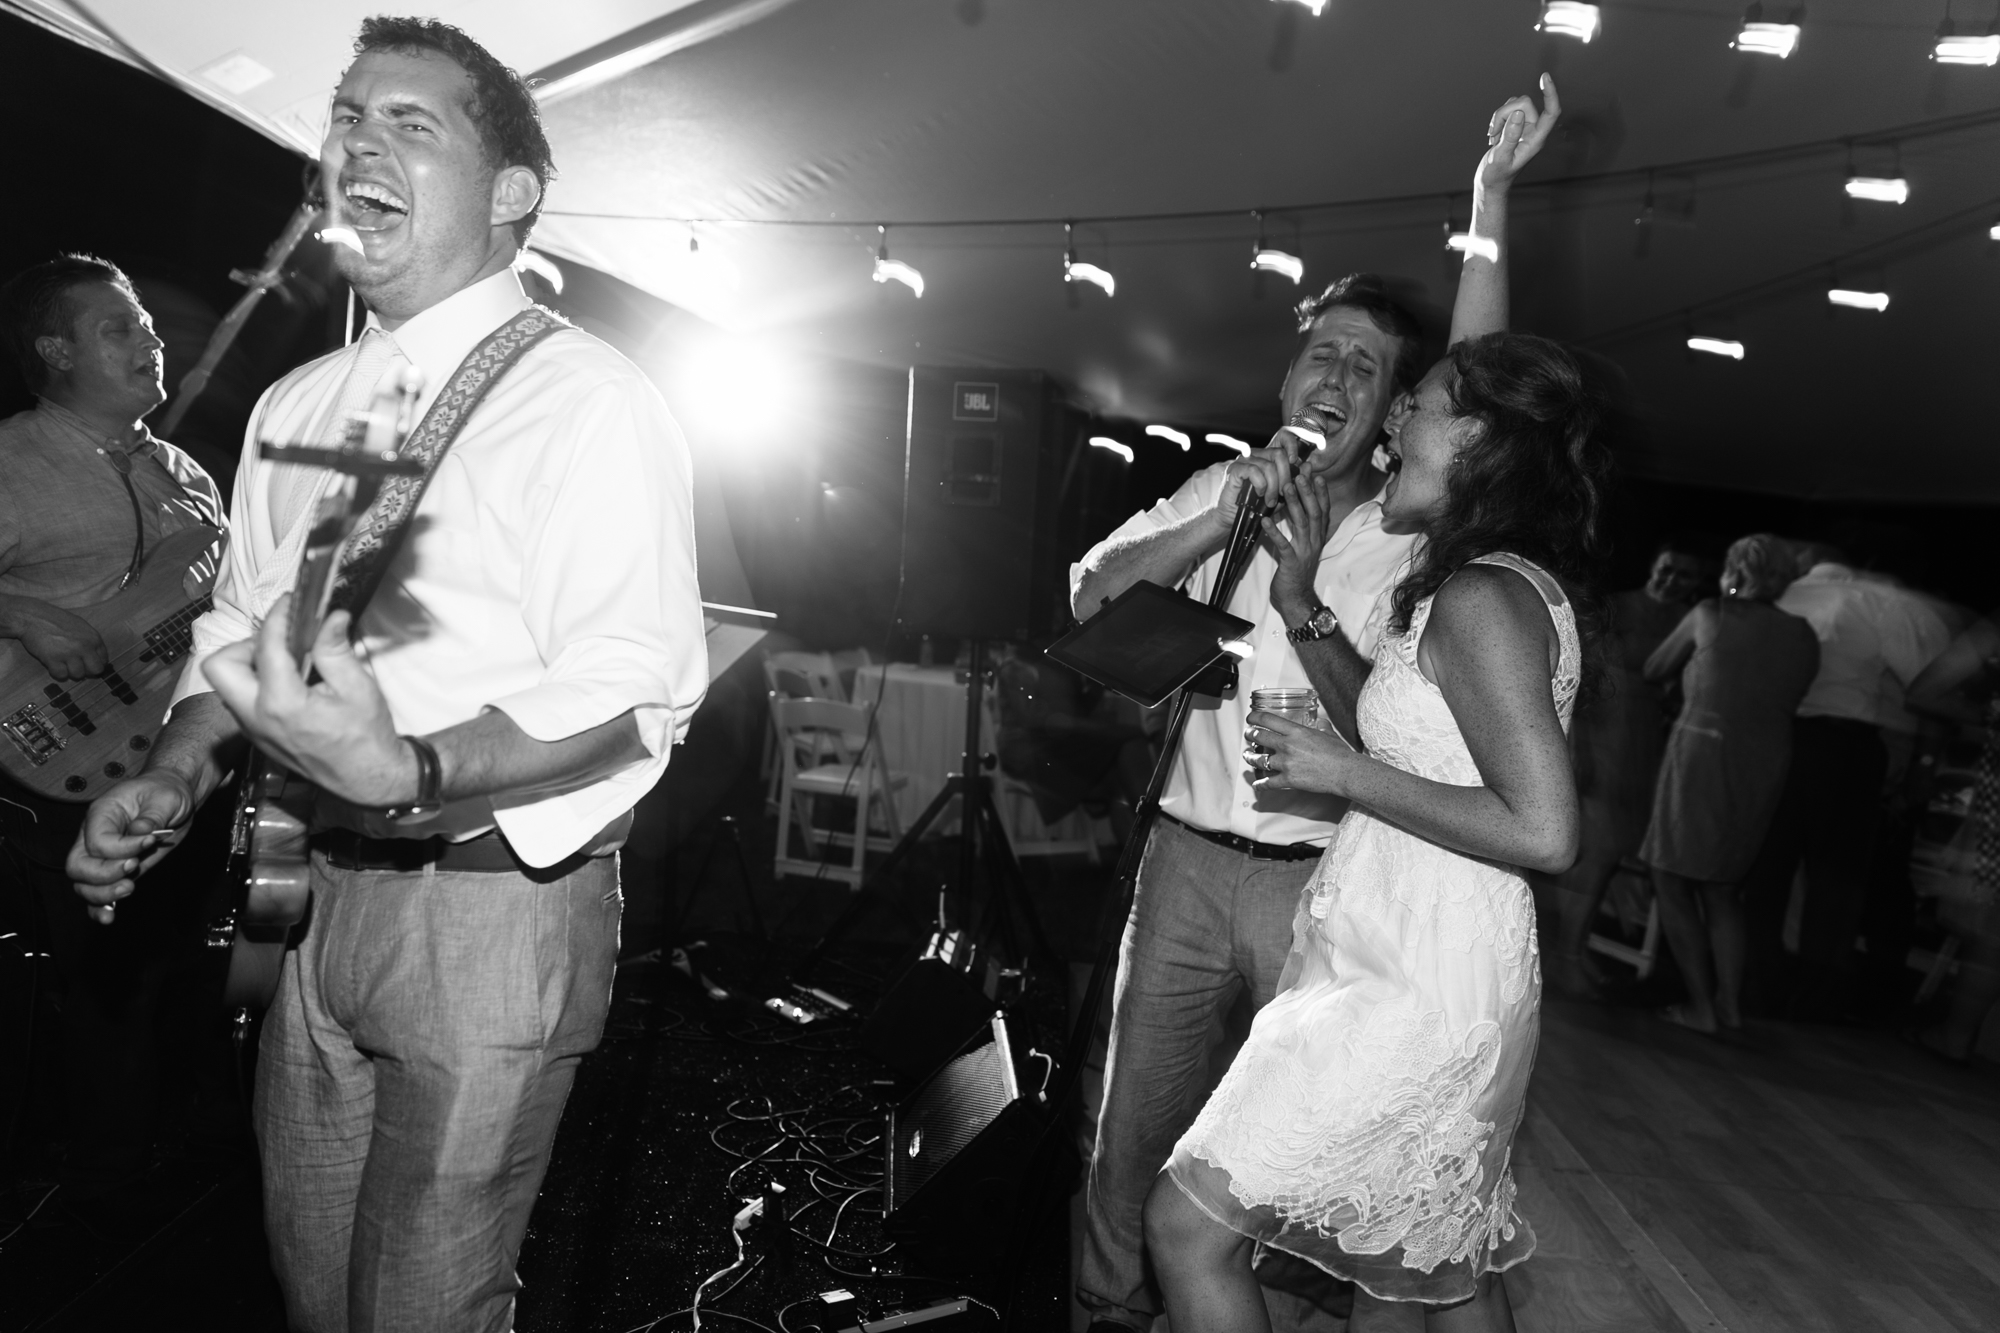 The groom jams with the band on his wedding day while his (new) wife supplies background vocals